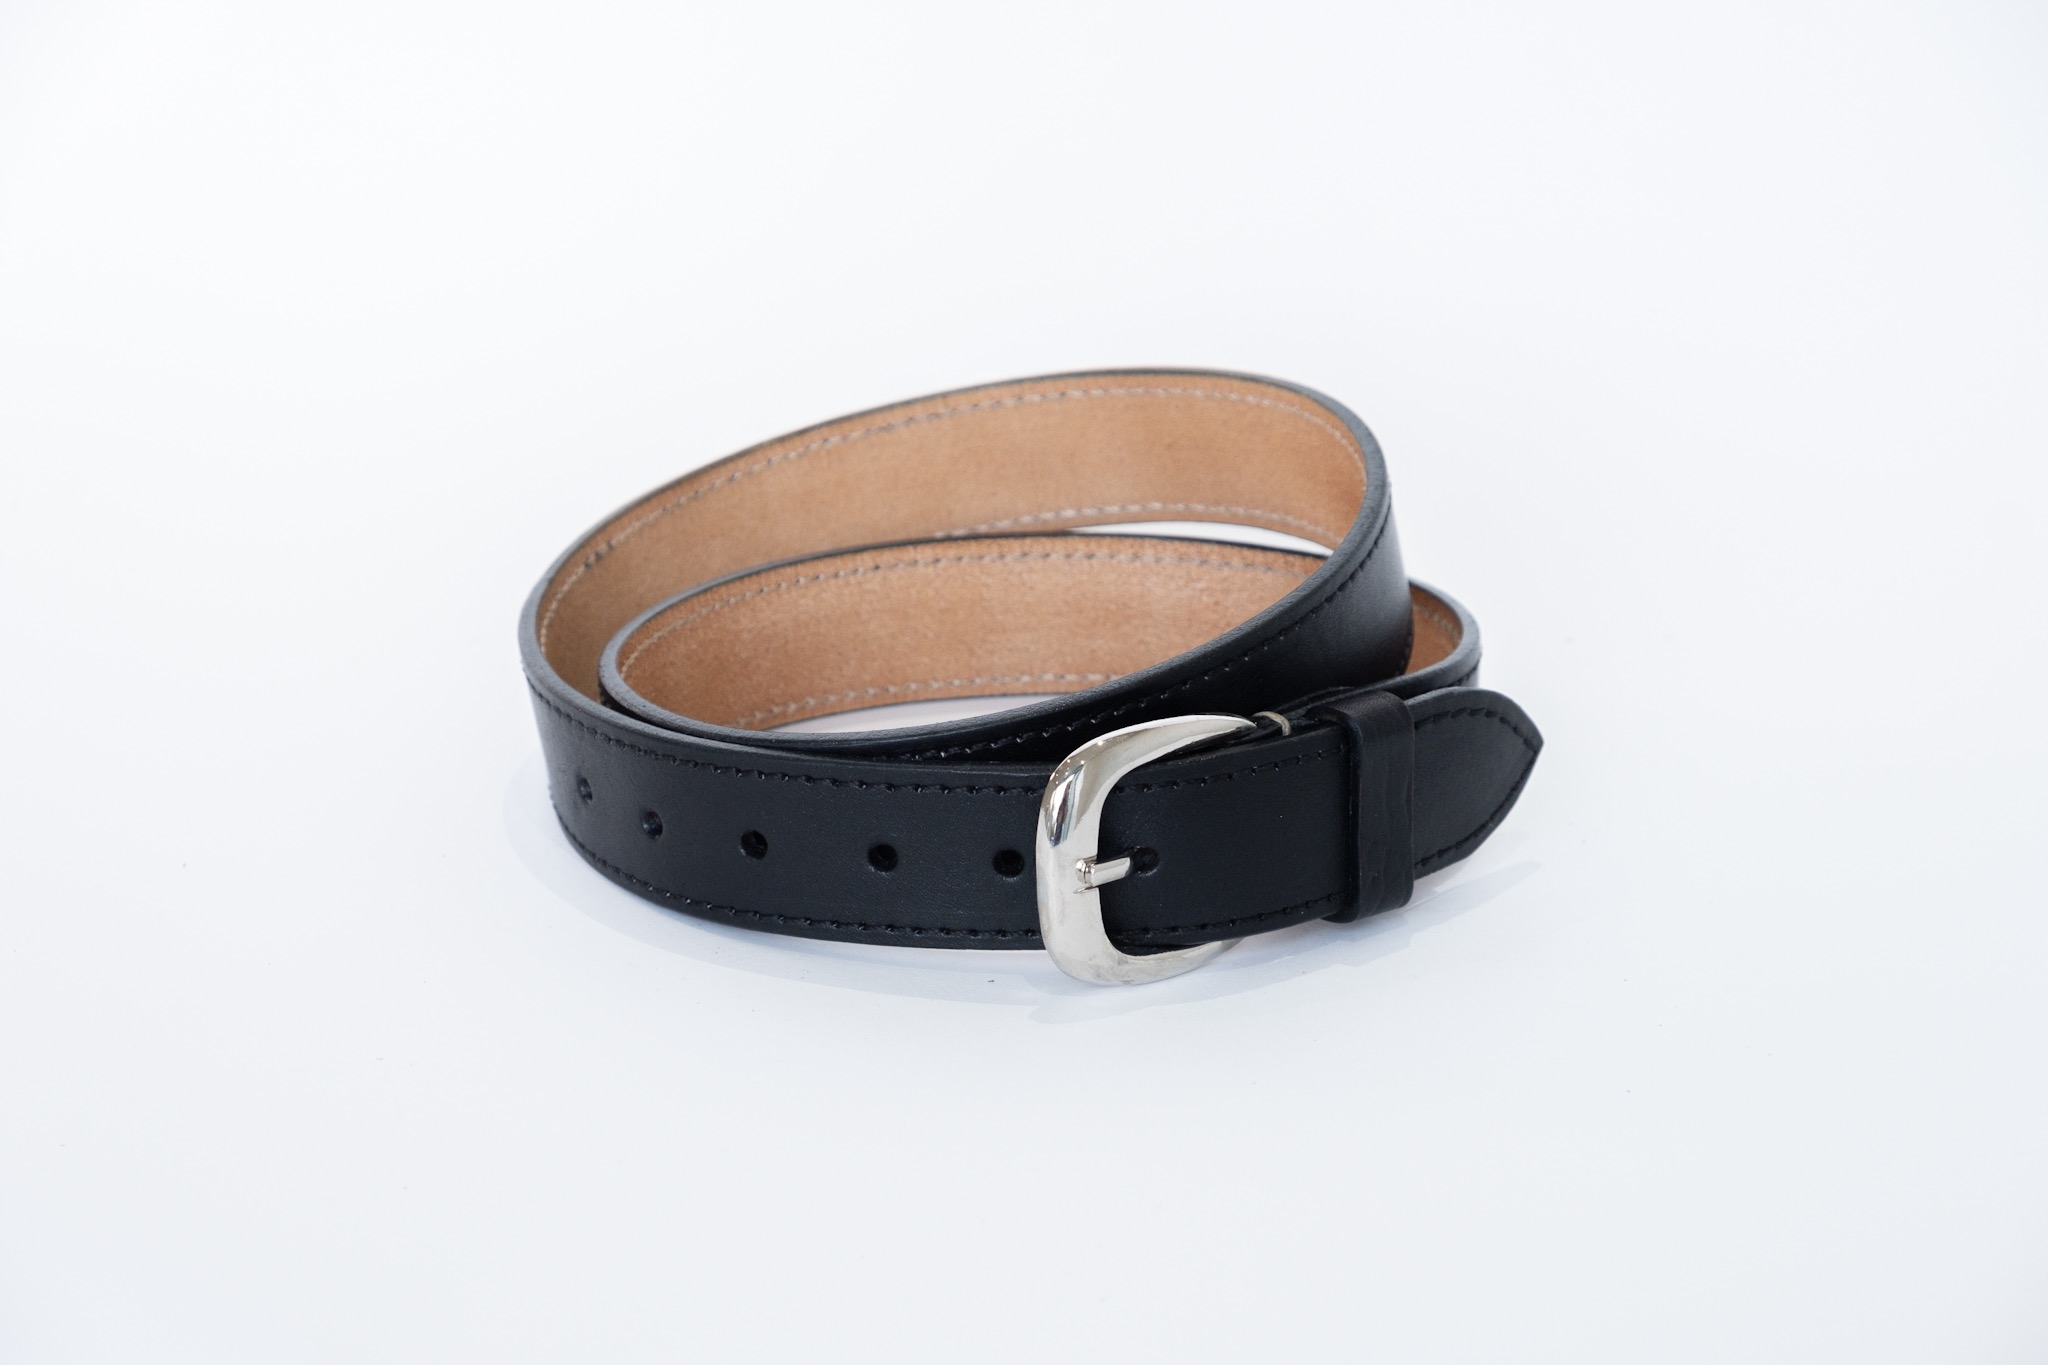 This beautiful and stylish accessory has so much character in the natural veg tanned genuine leather. Each belt is finished off with a hand stitched detail that makes this accessory a unique one of a kind. No shortcuts are taken.  This versatile belt can be worn with anything! You can dress it up for a smarter look, or wear it casually for the everyday, with jeans, or to the office - a must have for your wardrobe. This is the kind of belt that you can hand down to your children. It's made to last!  NOTE: All belts can be made up stitched or plain. Please note that all belts come in two widths.  How to measure the correct length of your belt.